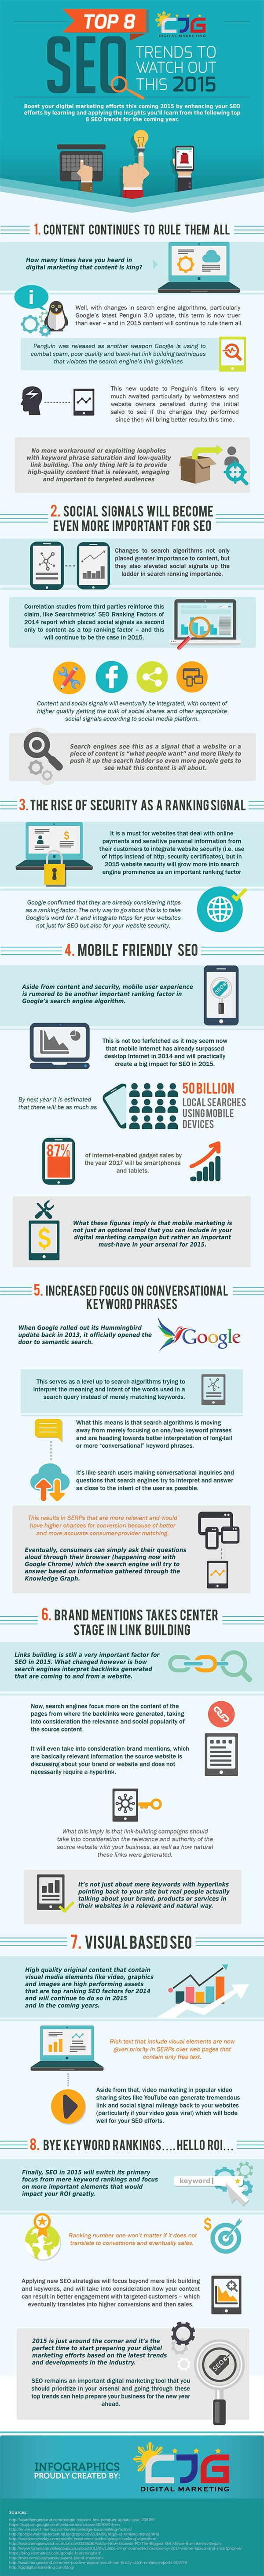 8 SEO Trends Every Website Owner Must Pay Attention To In 2015 40ef49af47267ee507b0fc75ced828a6